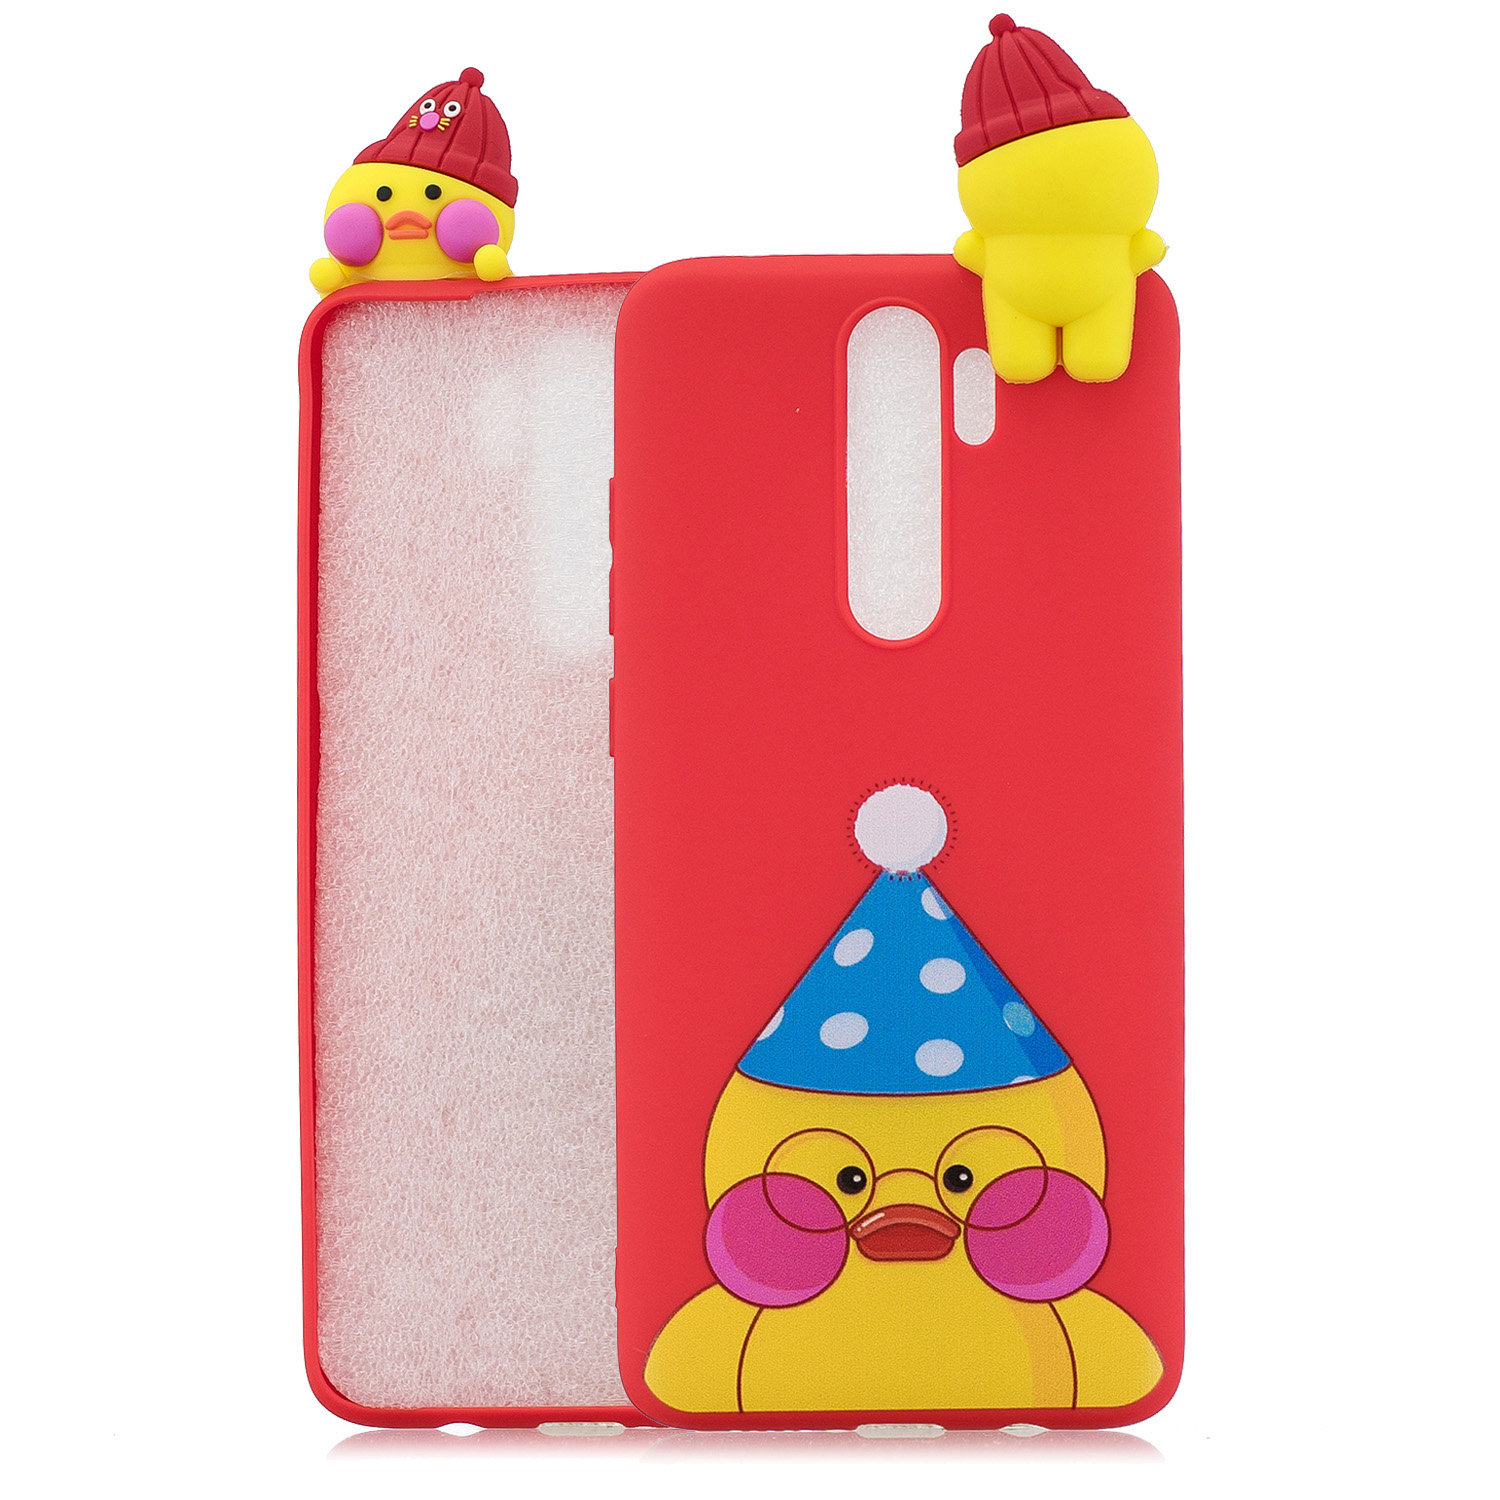 For Redmi NOTE 8 NOTE 8 pro 3D Color Painting Pattern Drop Protection Soft TPU Back Cover Mobile Phone Case red